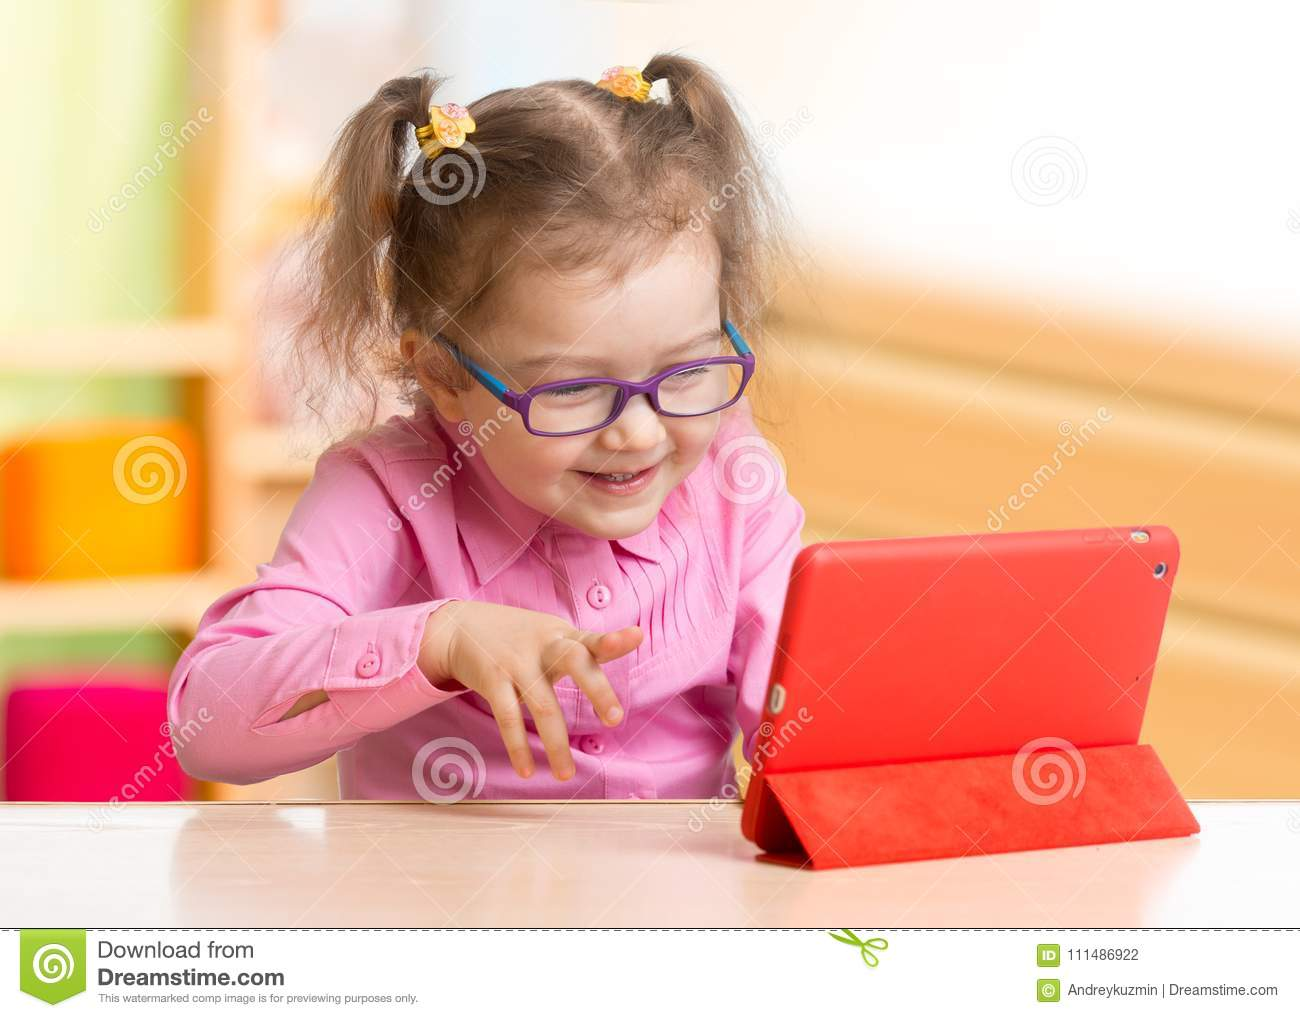 Smart kid in spectacles using tablet PC or e-book sitting at table in her room